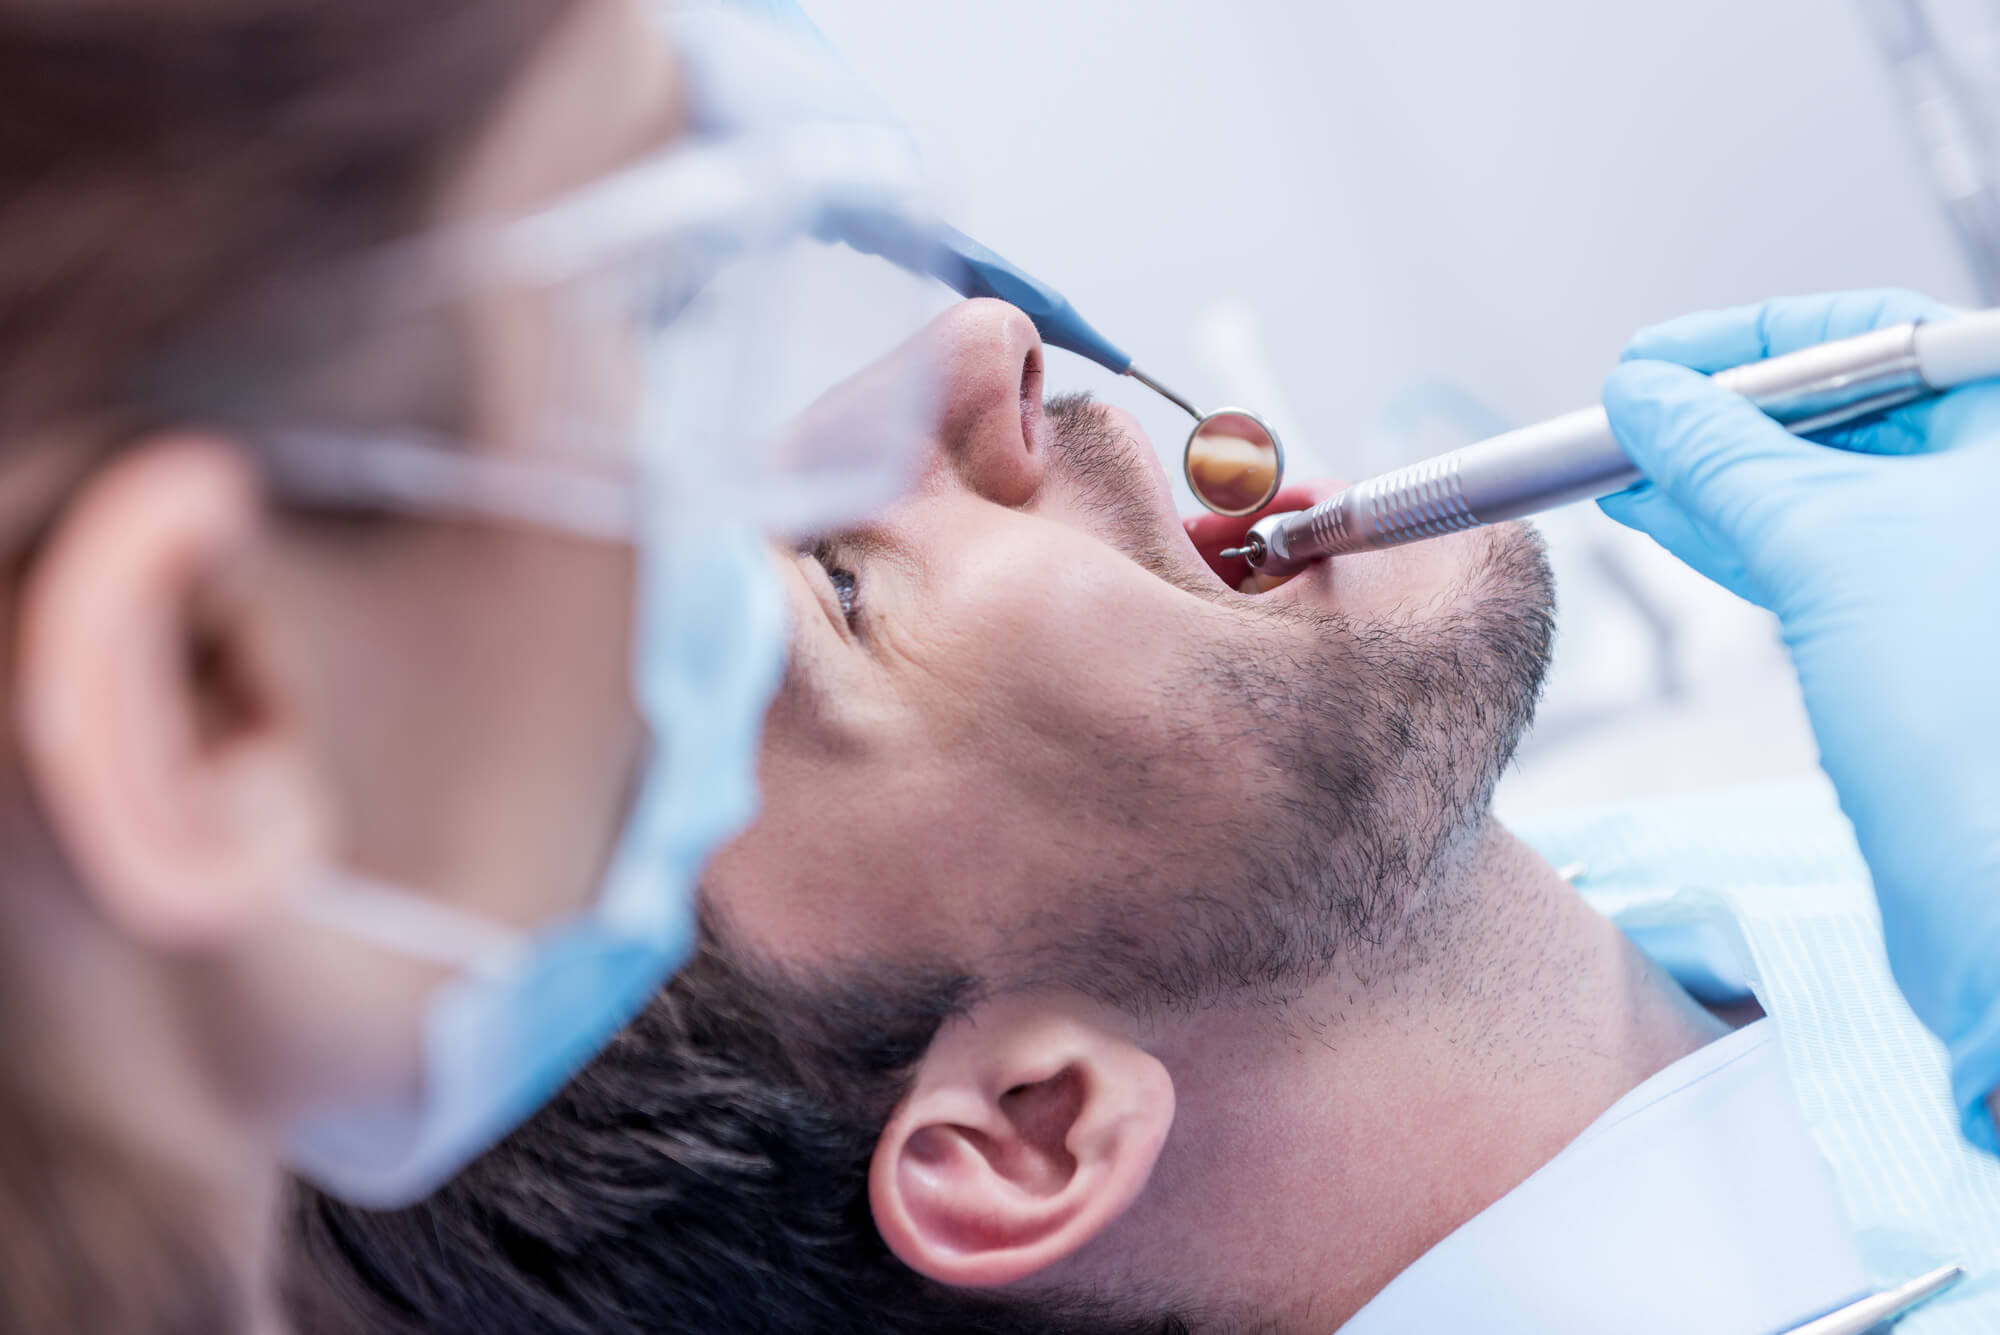 Periodontist Pembroke Pines examining patient's mouth